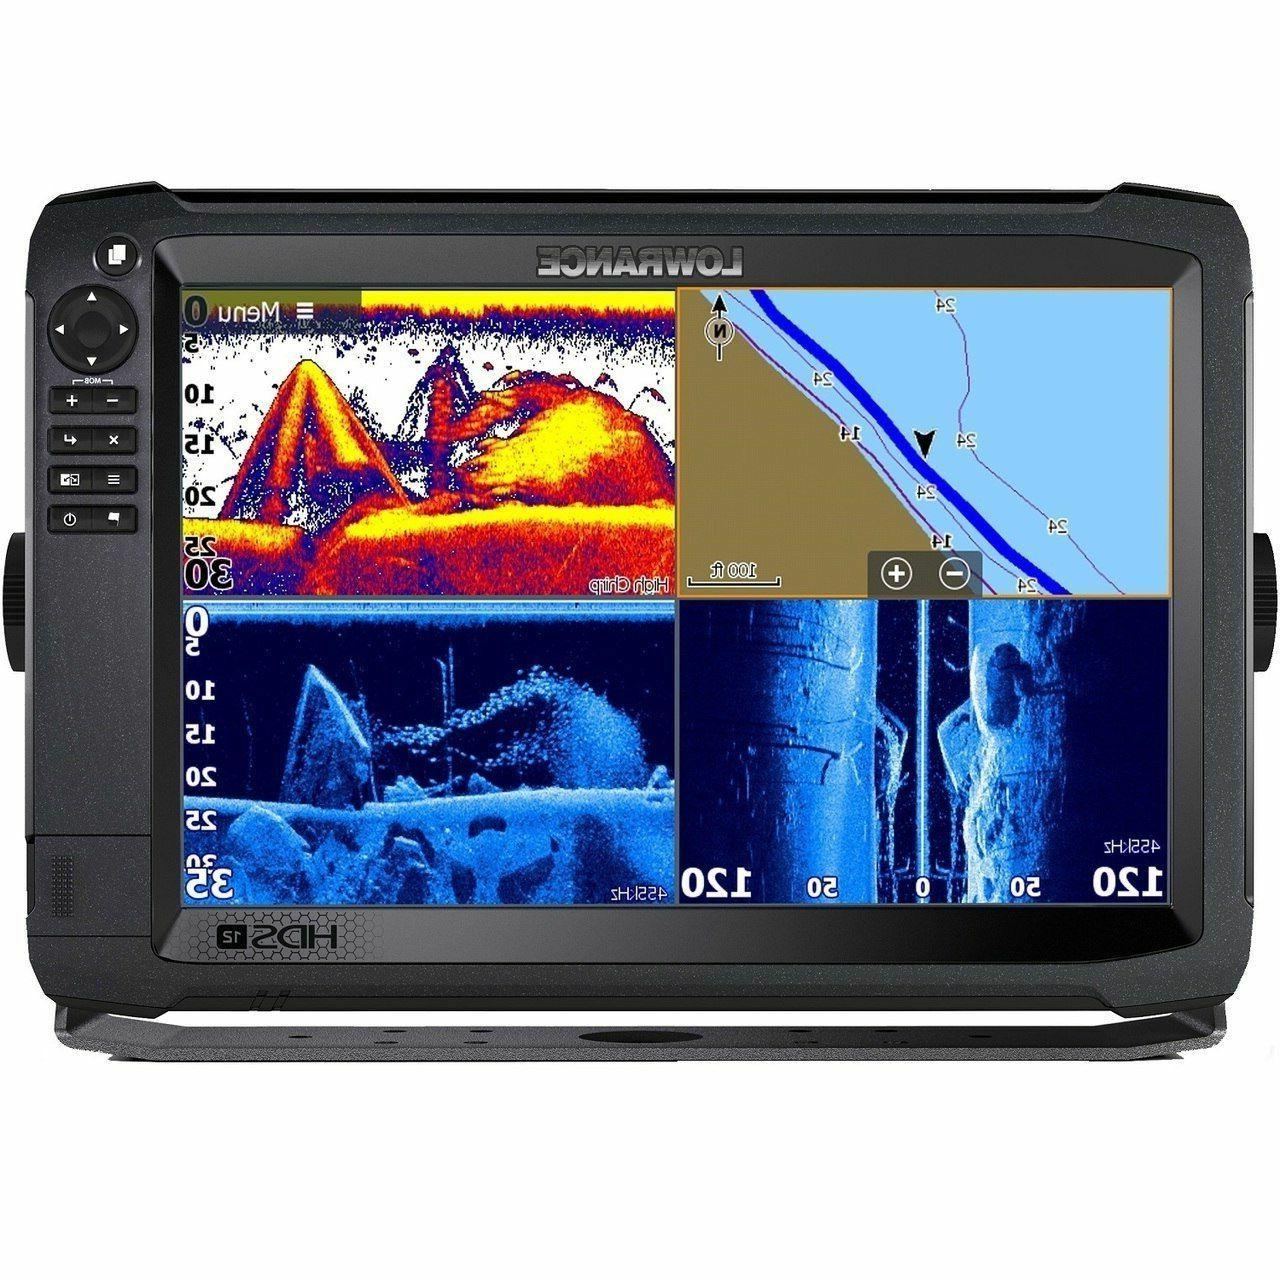 Lowrance HDS-12 Carbon Touchscreen Fishfinder Chartplotter Insight HD Pro